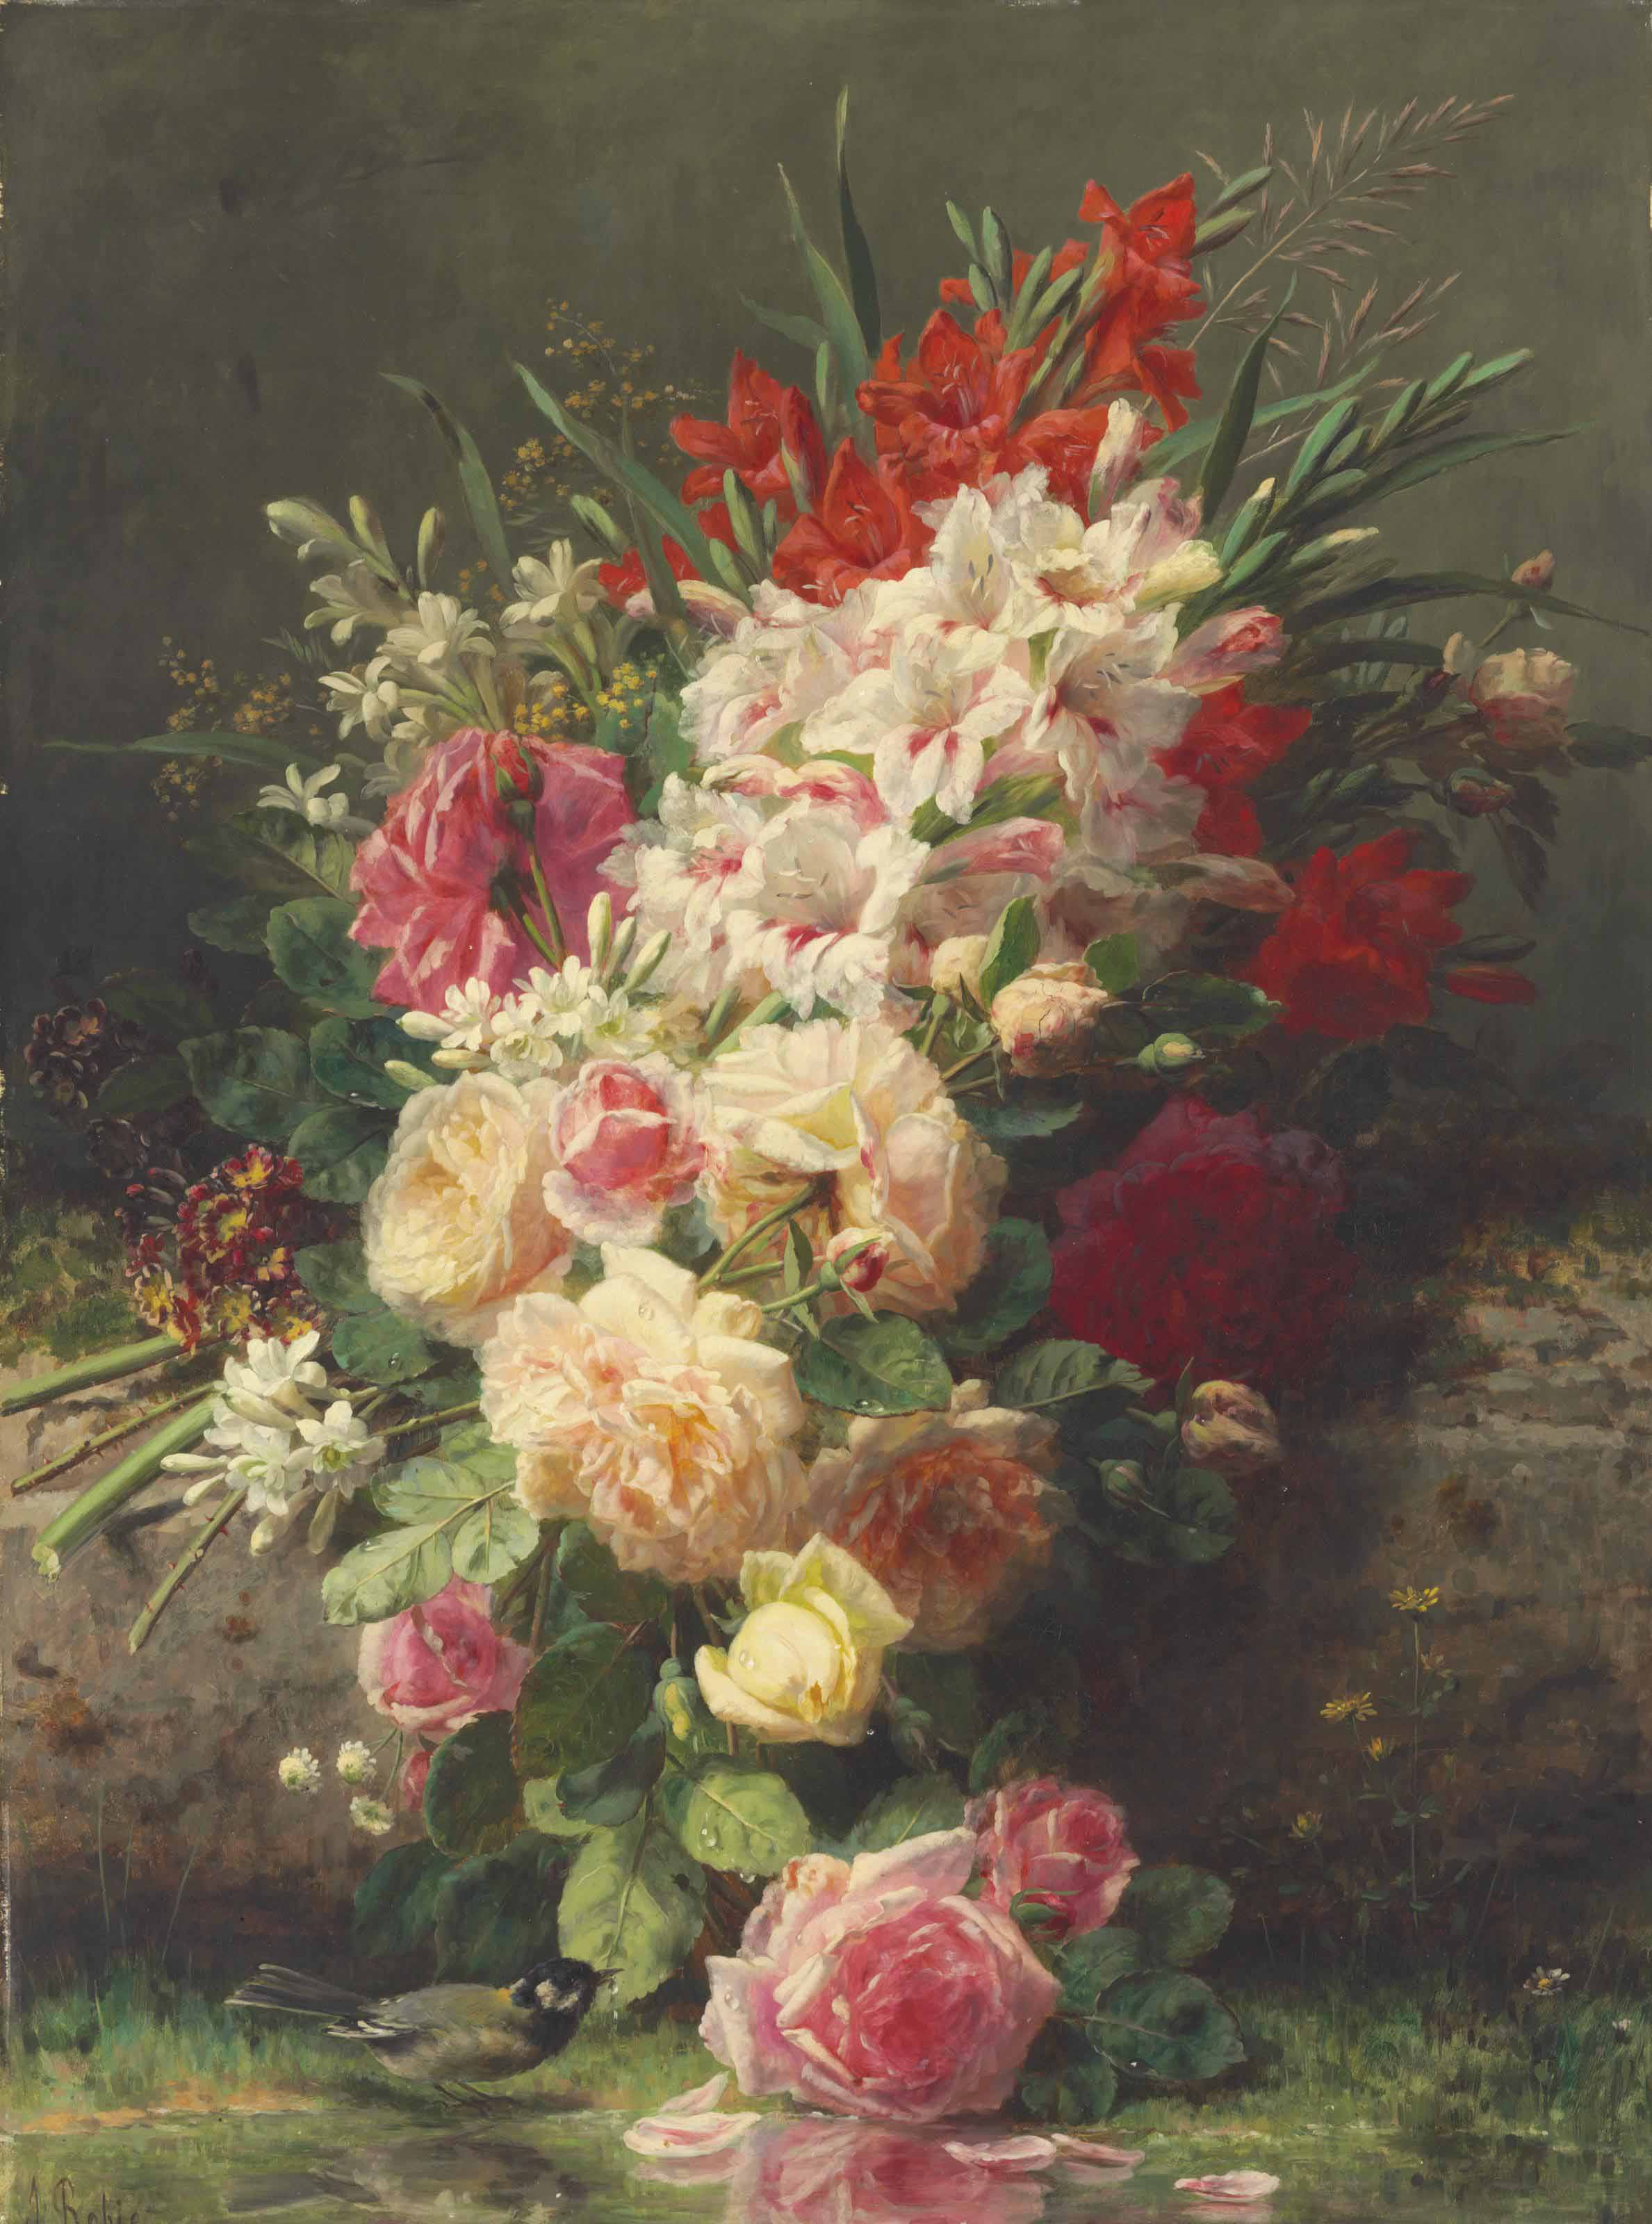 A Still Life with Roses, Gladioli and other Flowers on a Ledge with a Bird by a Stream